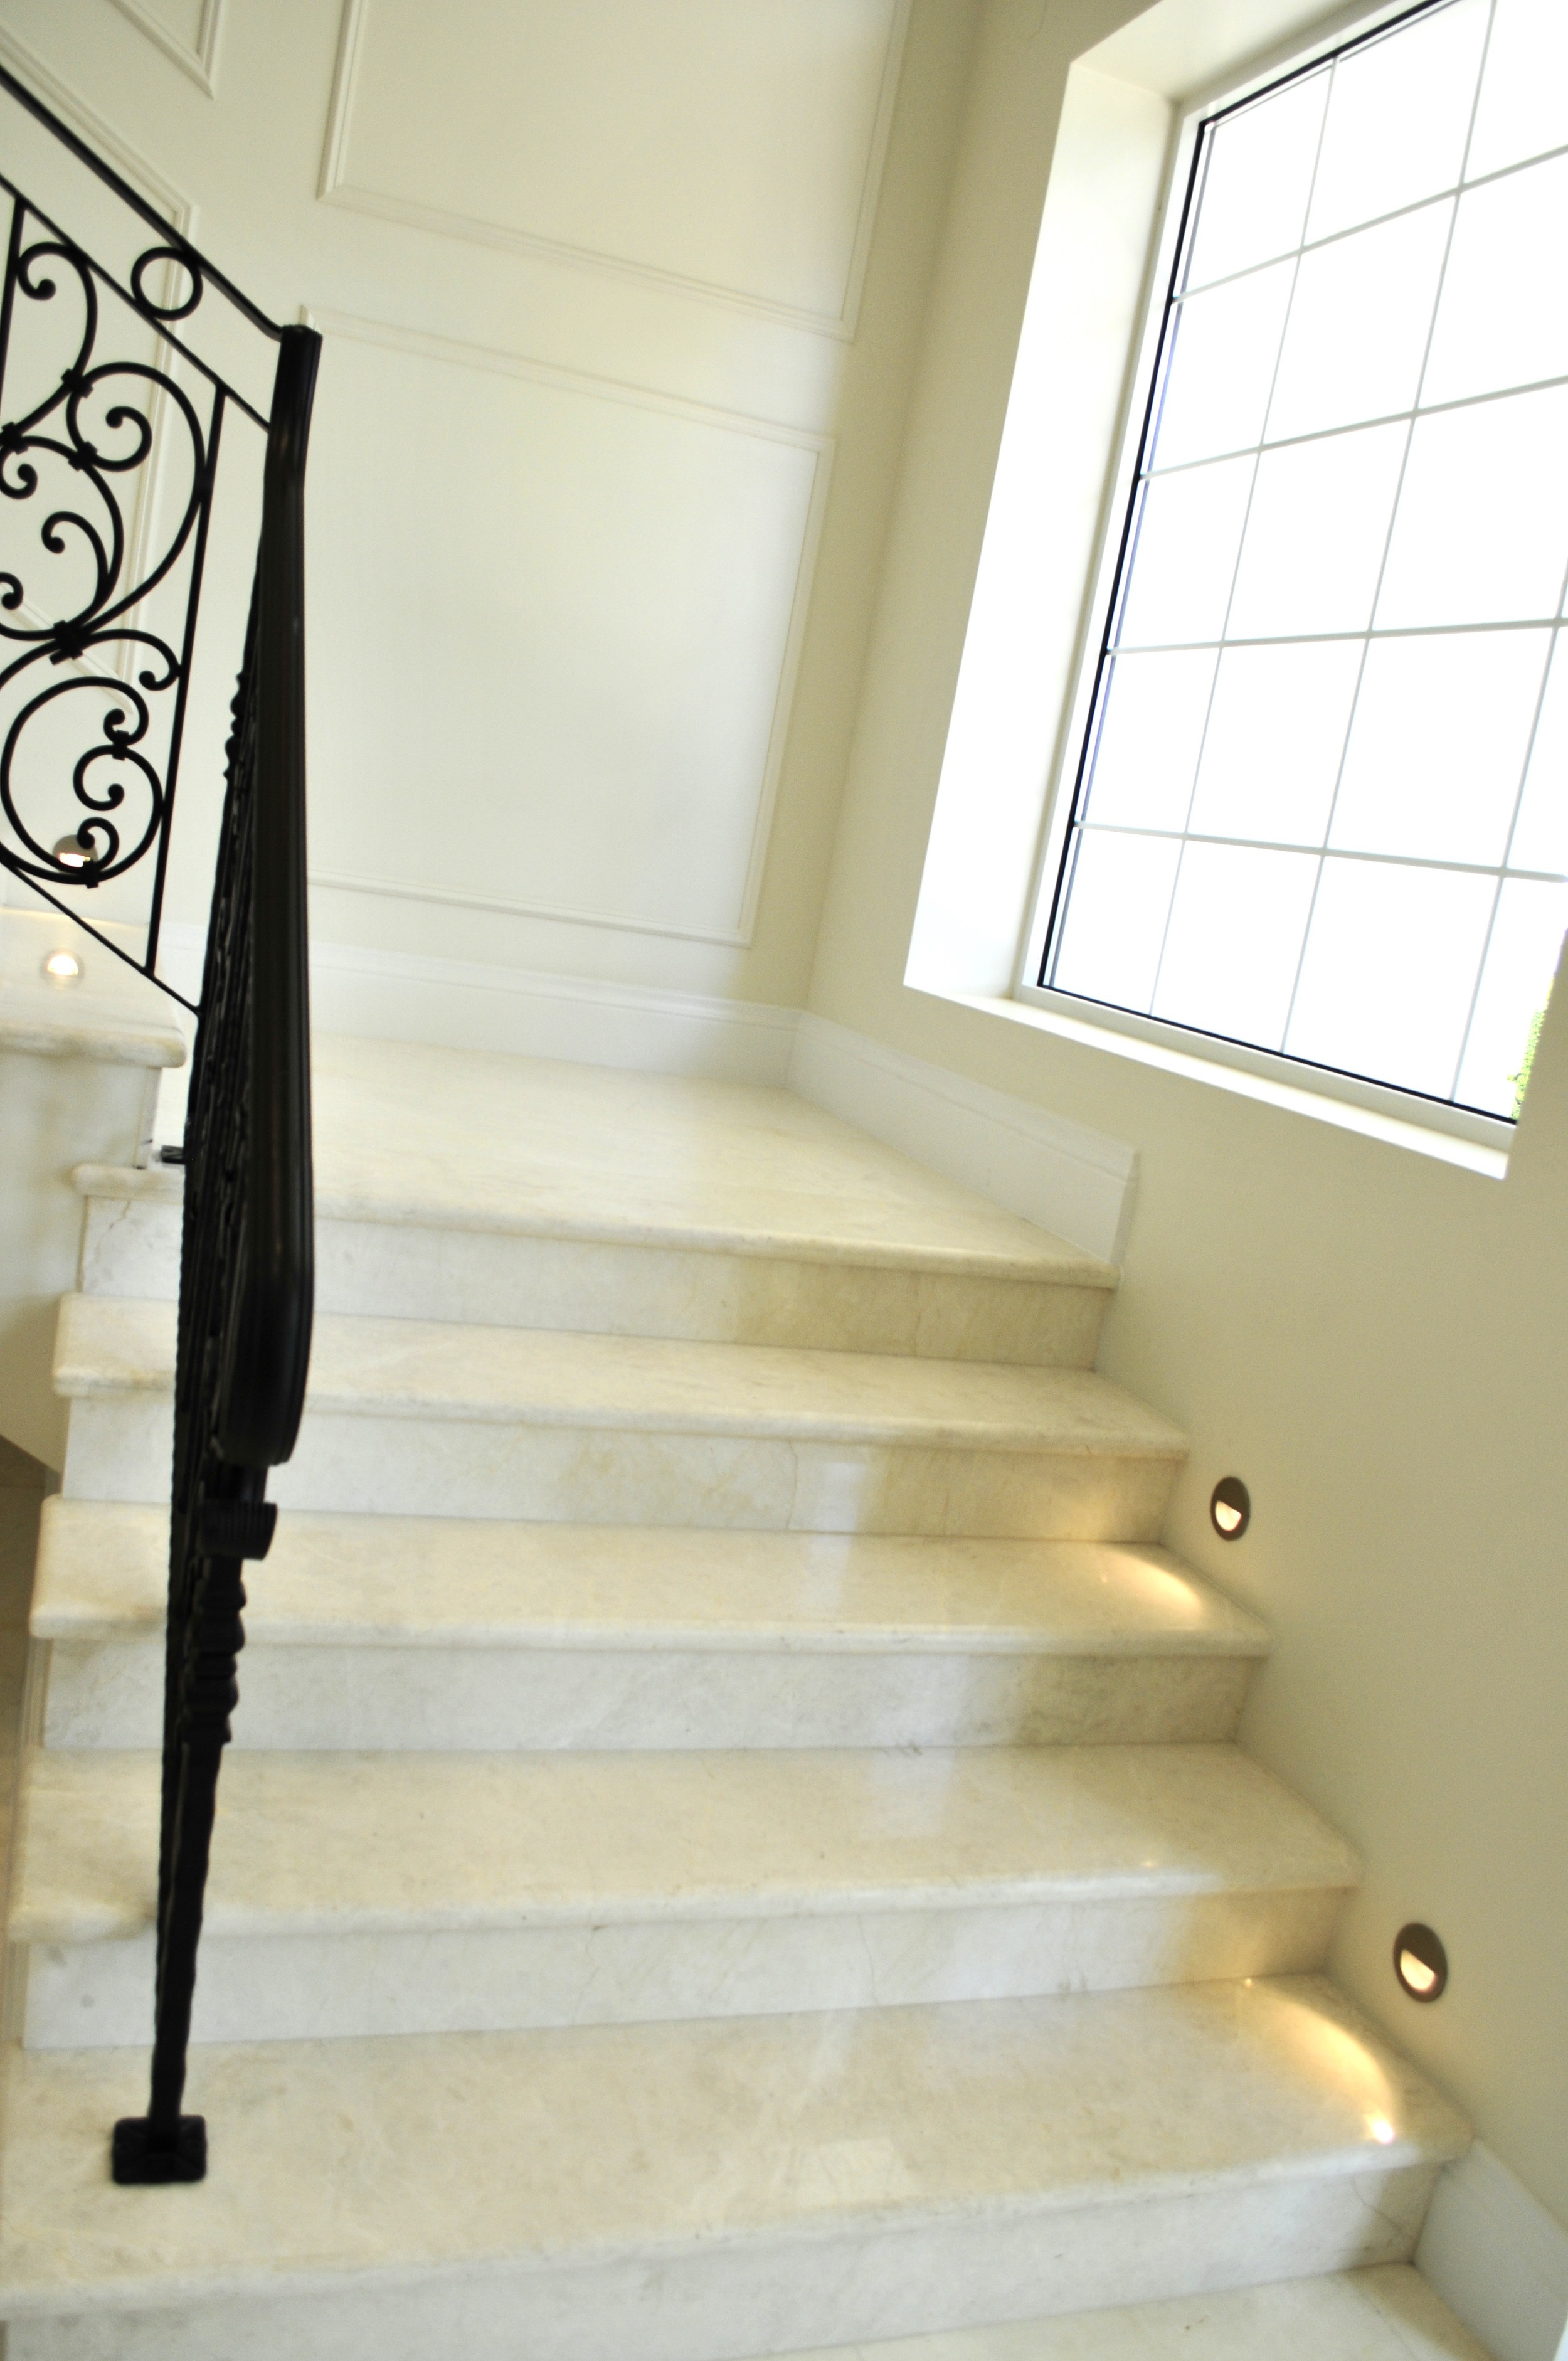 Custom made wrought iron railings made by Artisan Metal works, Marble slab trees and risers, flush mounted low voltage stair lights.jpg